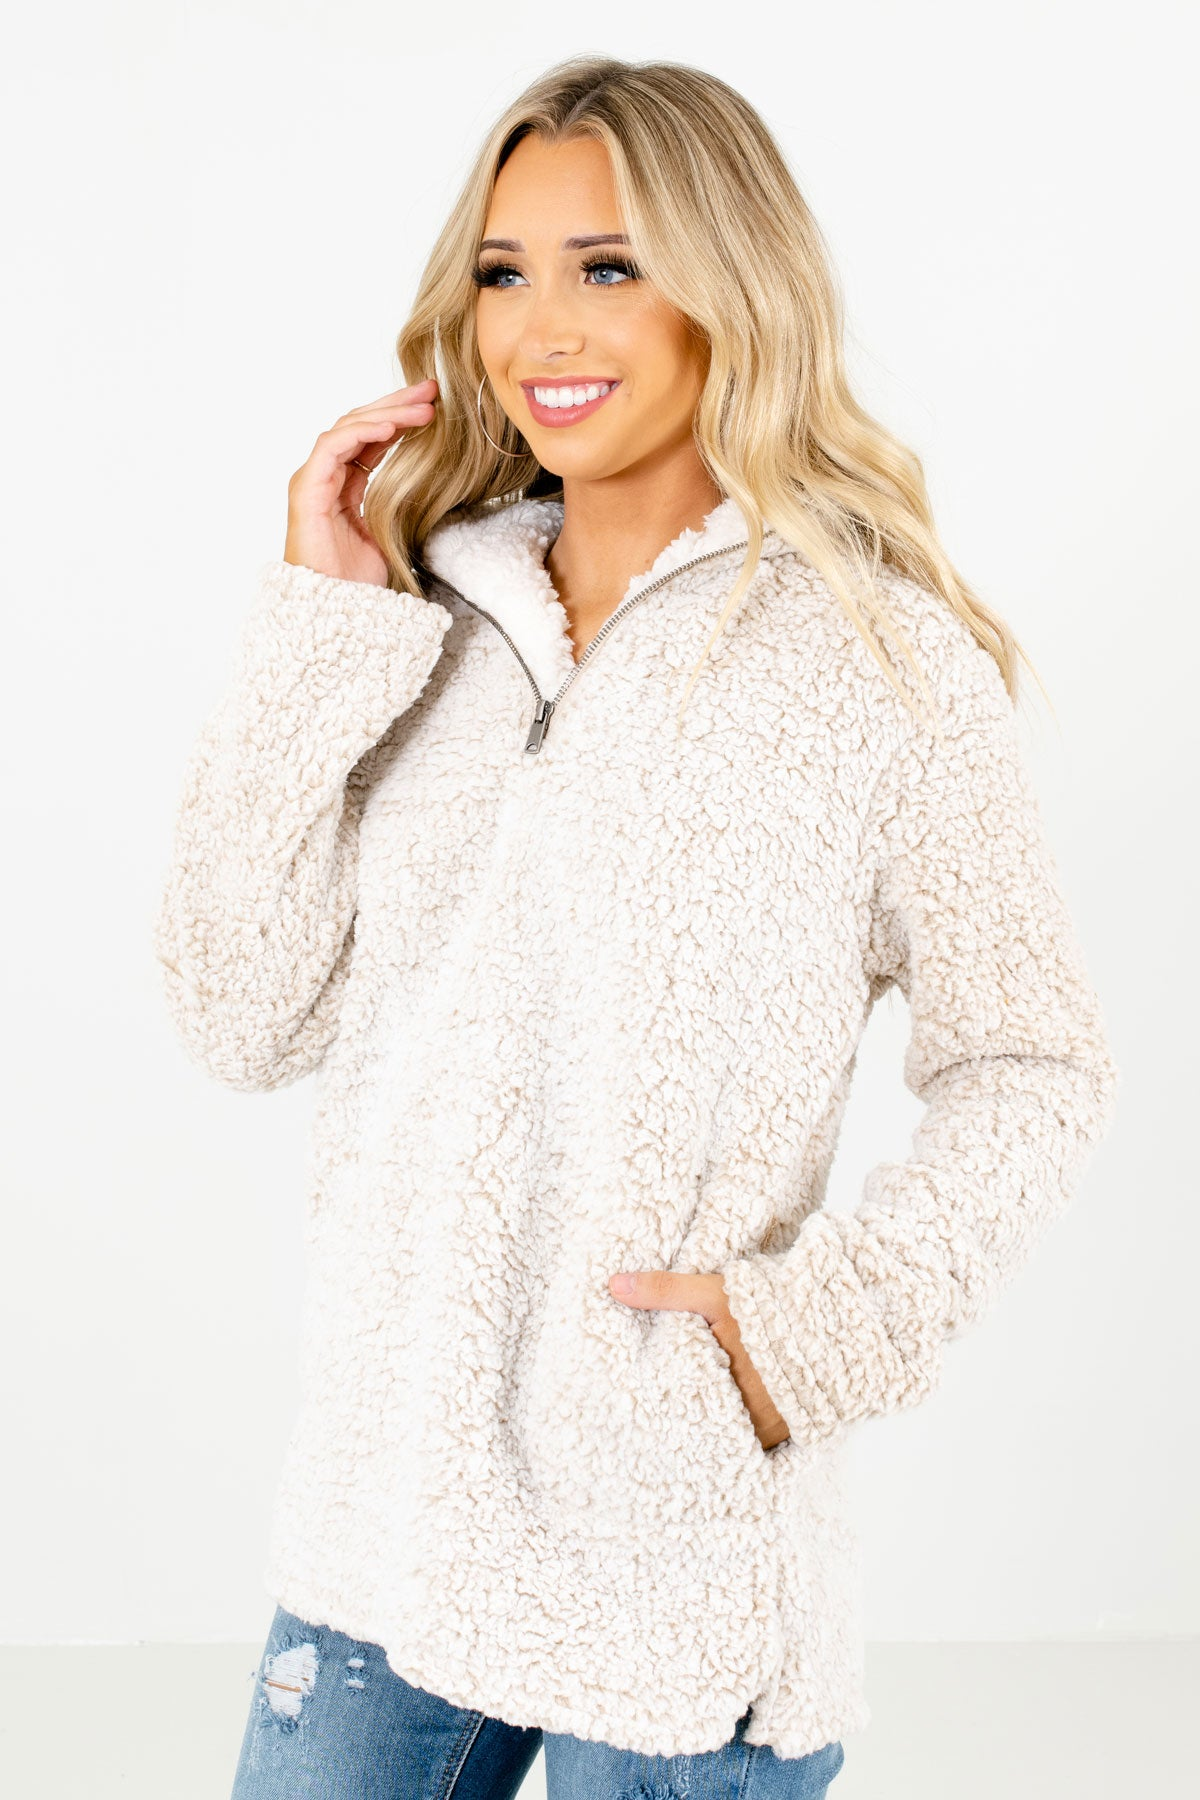 Beige Boutique Pullovers with Pockets for Women